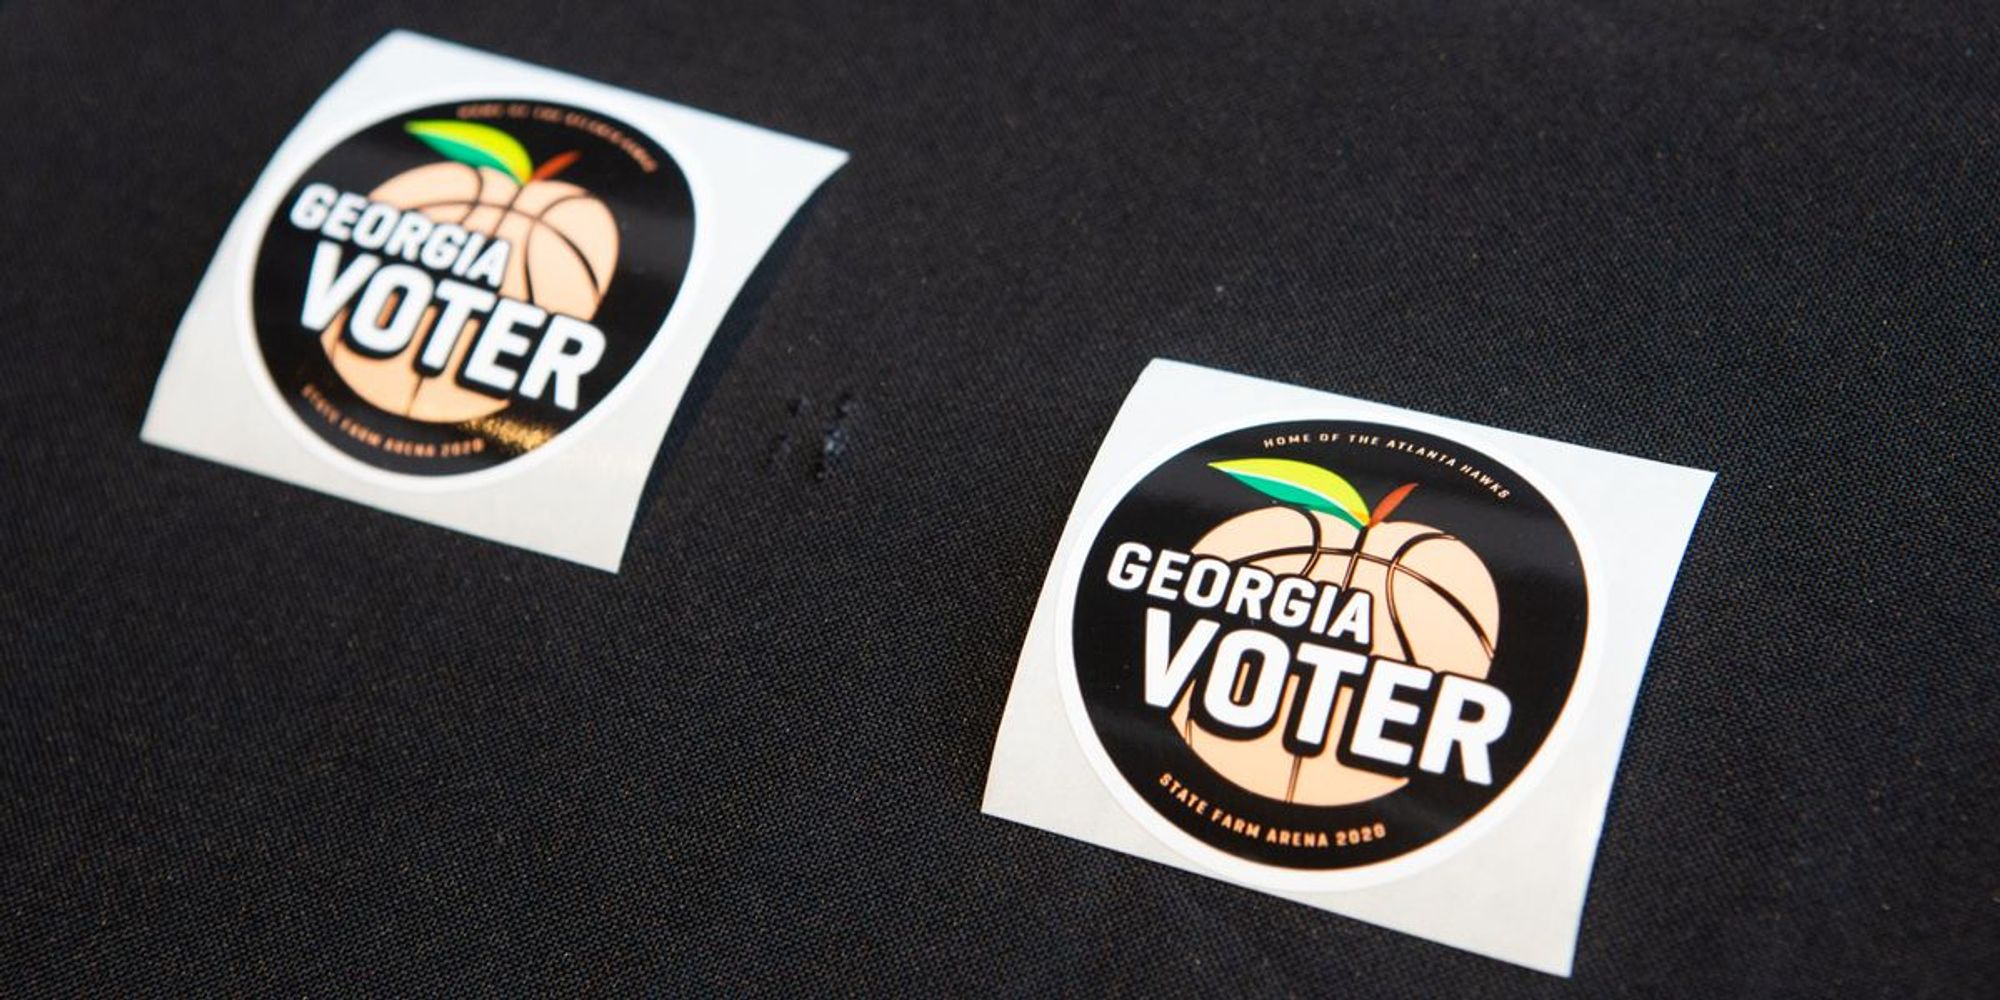 Georgia elections officials will not have paper backups of voter lists; longer lines likely